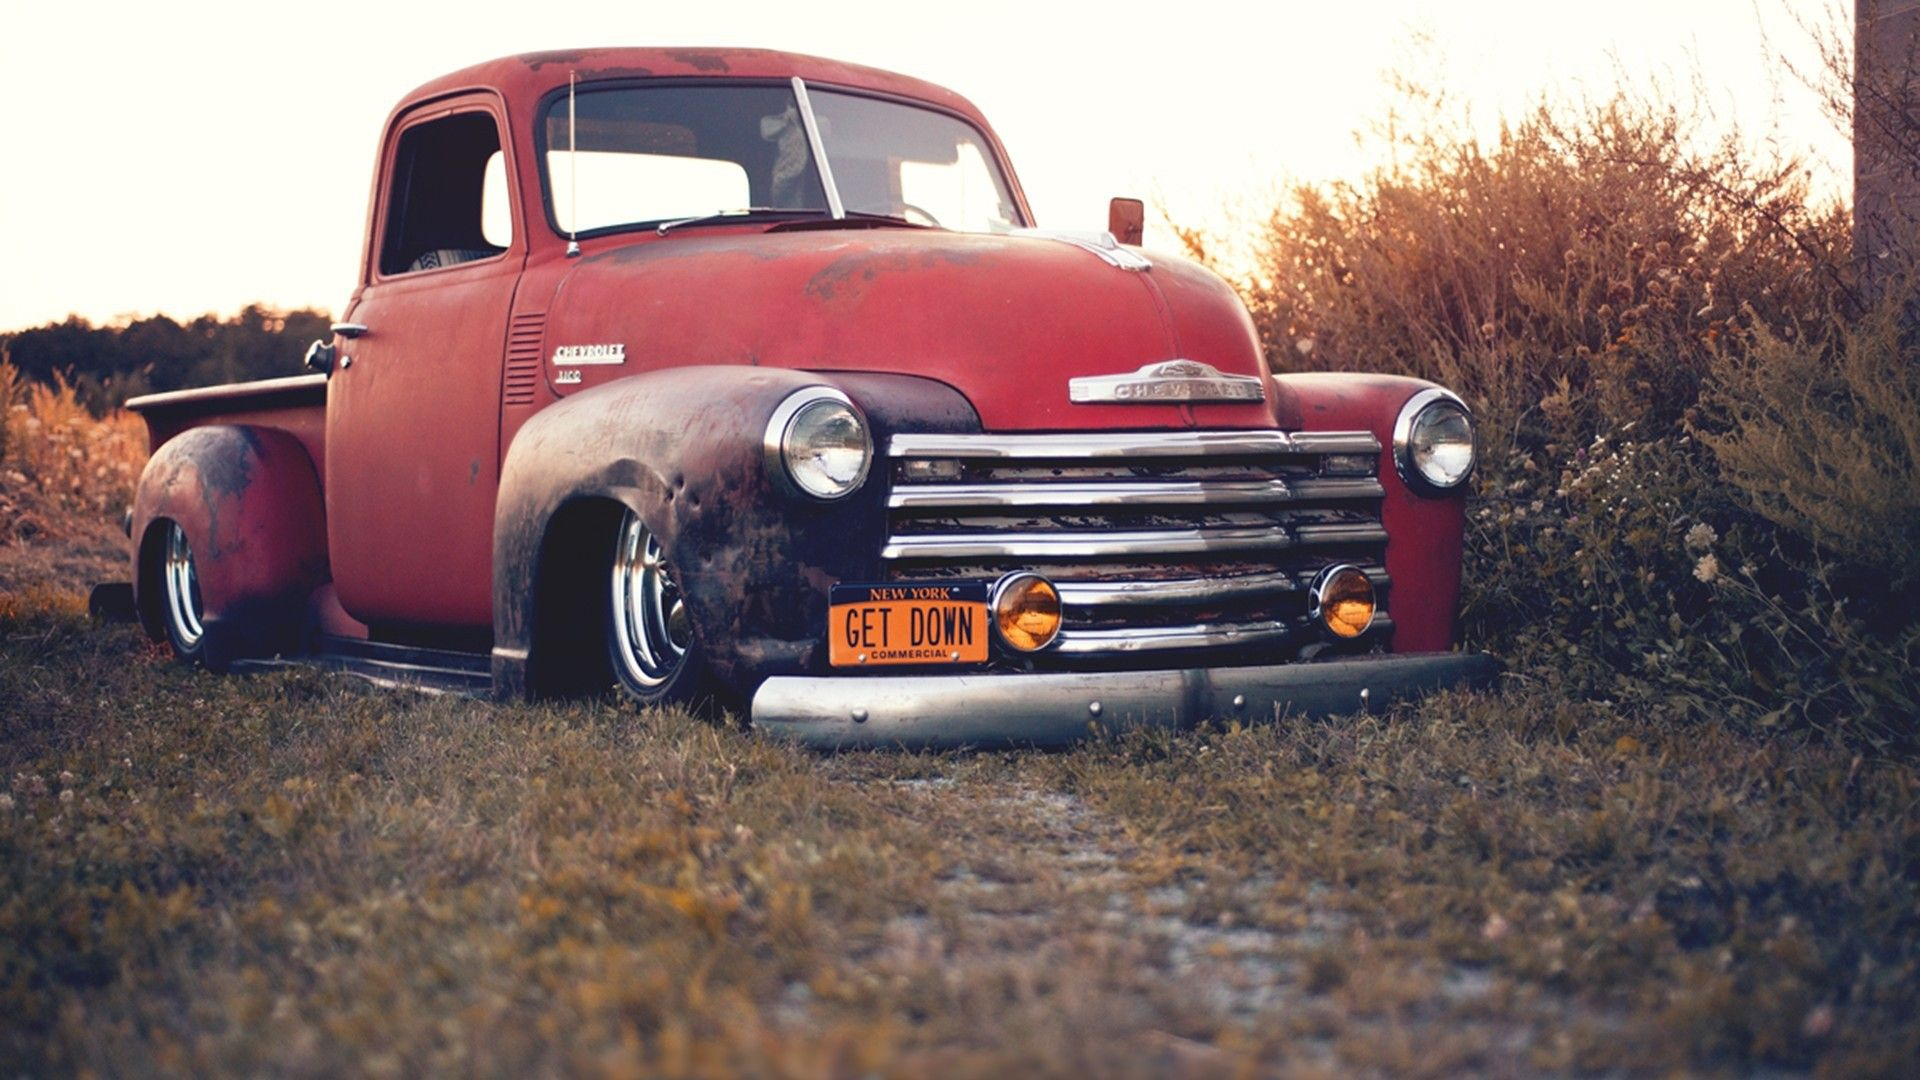 Old Chevrolet Chevy Pickup Truck Wallpaper Http Www